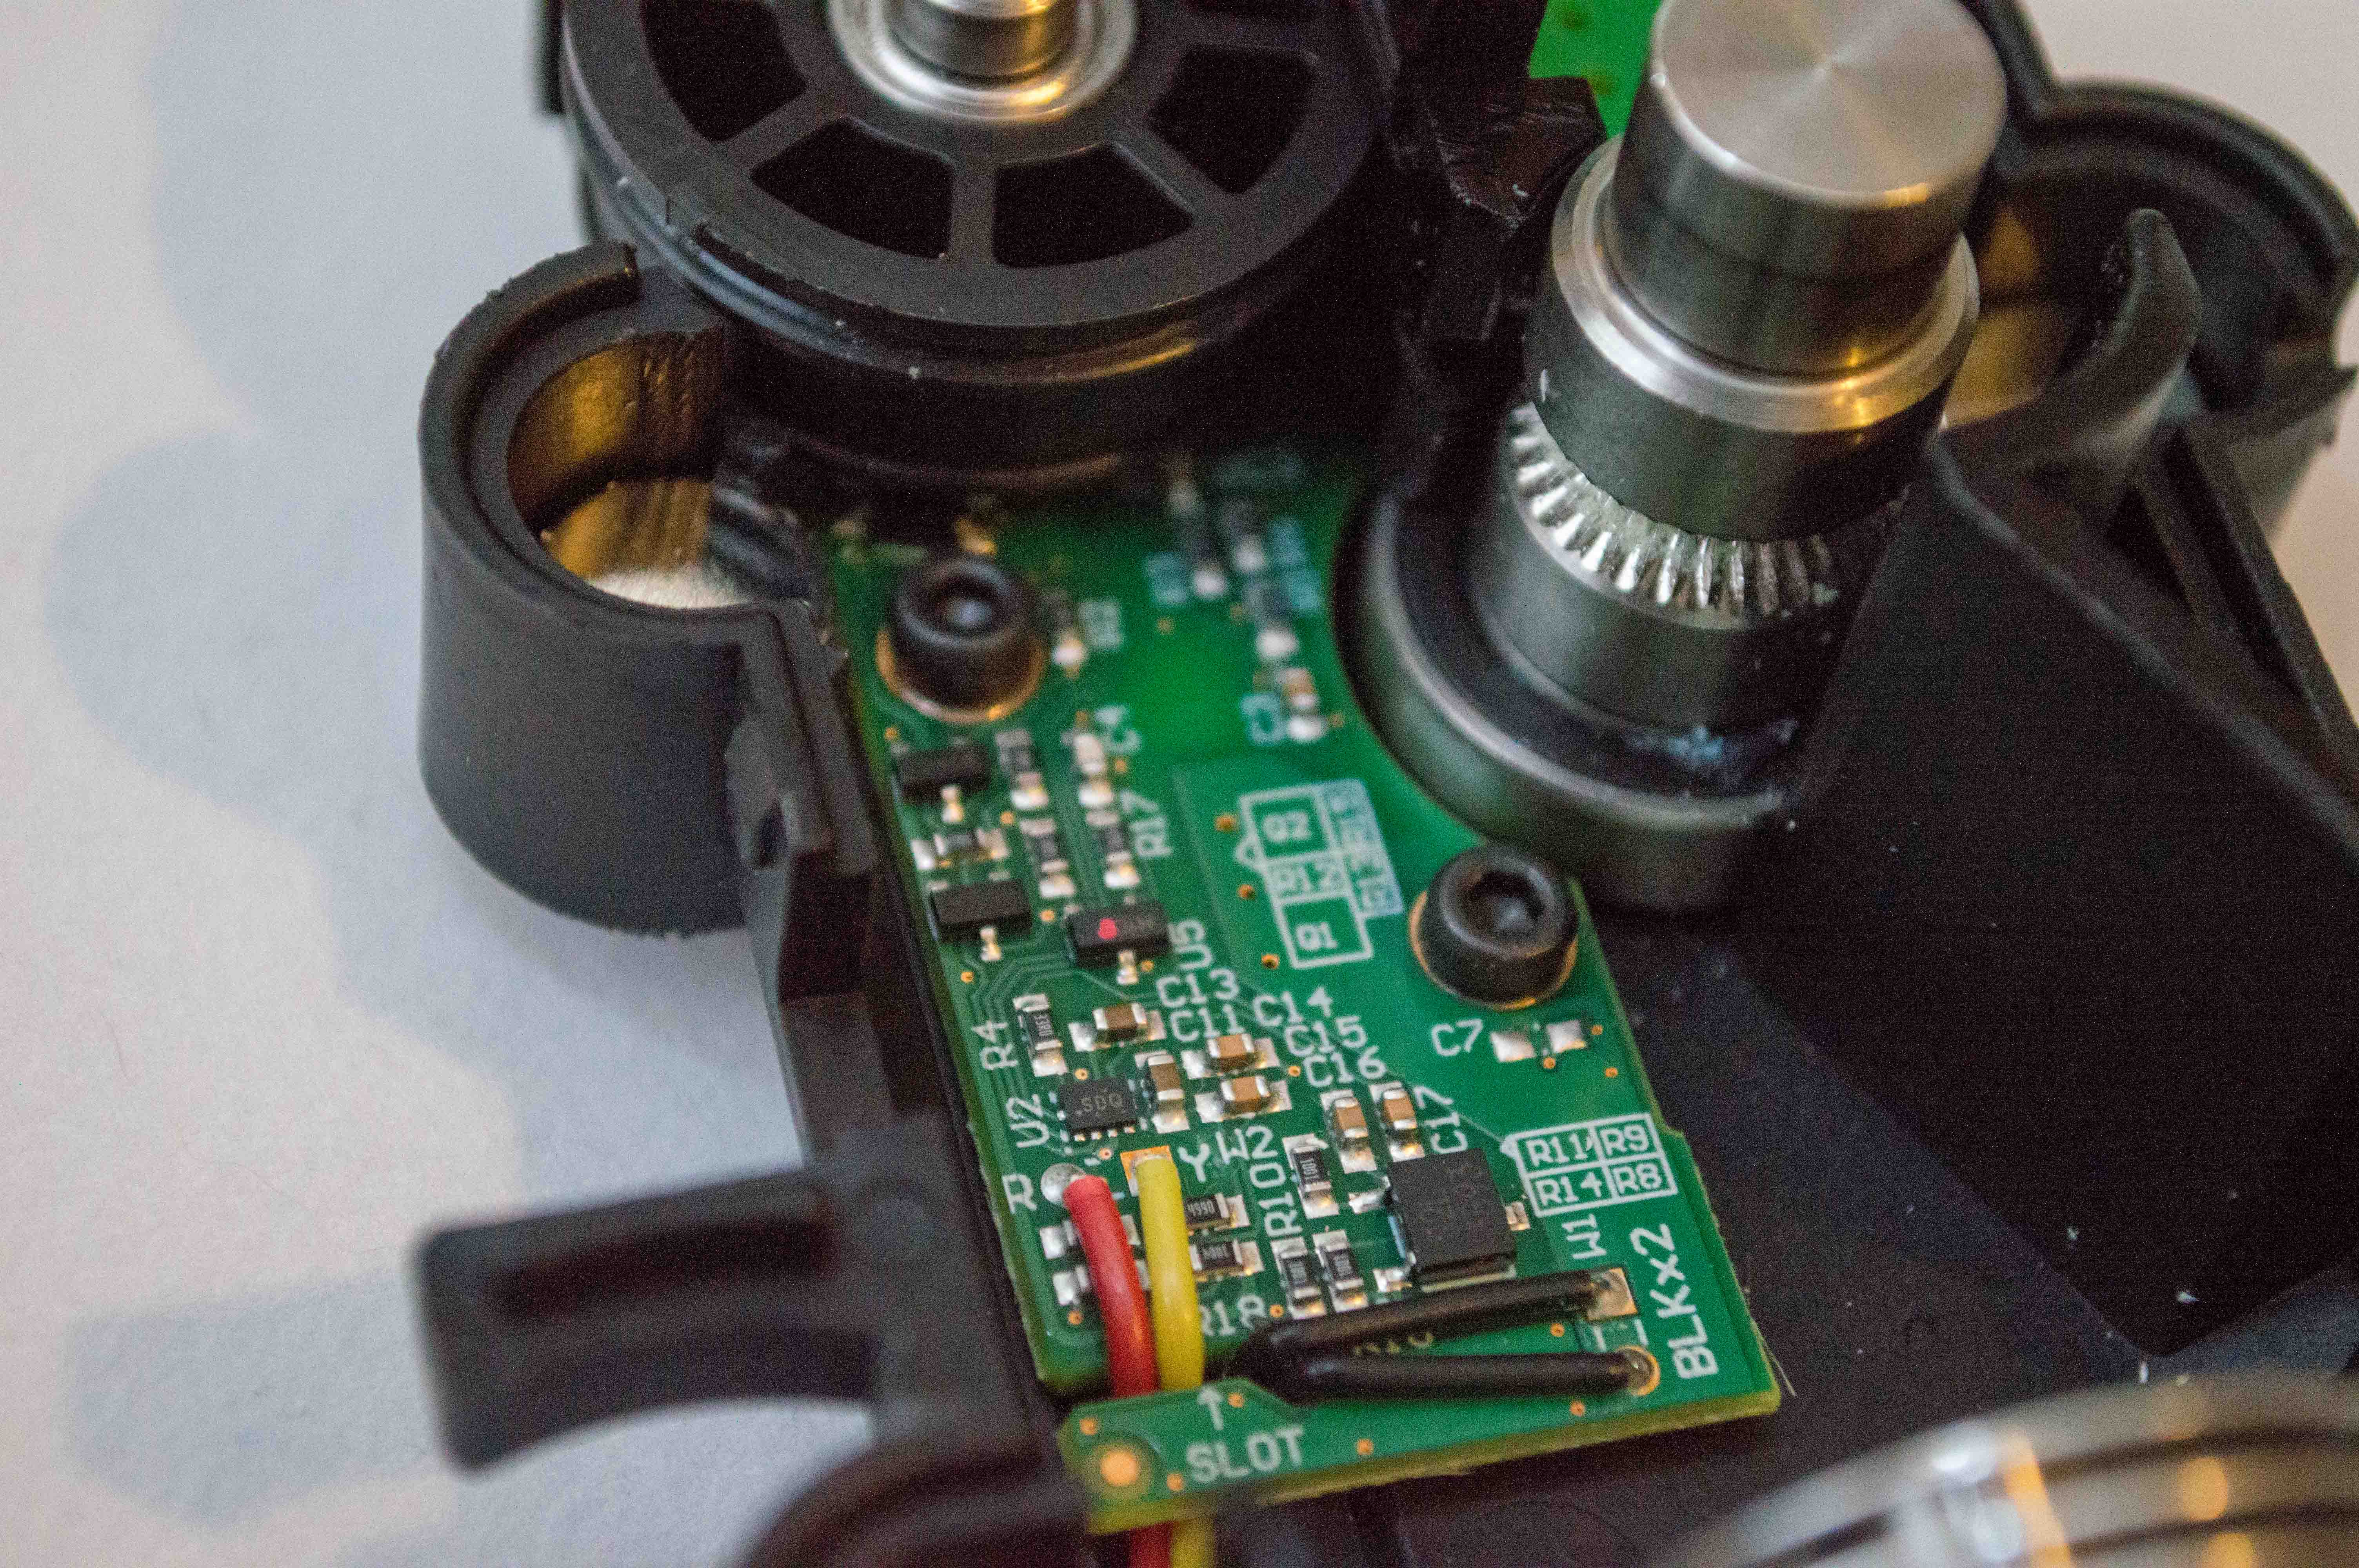 Fixing a Jammed/Clogged Makerbot Replicator Smart Extruder